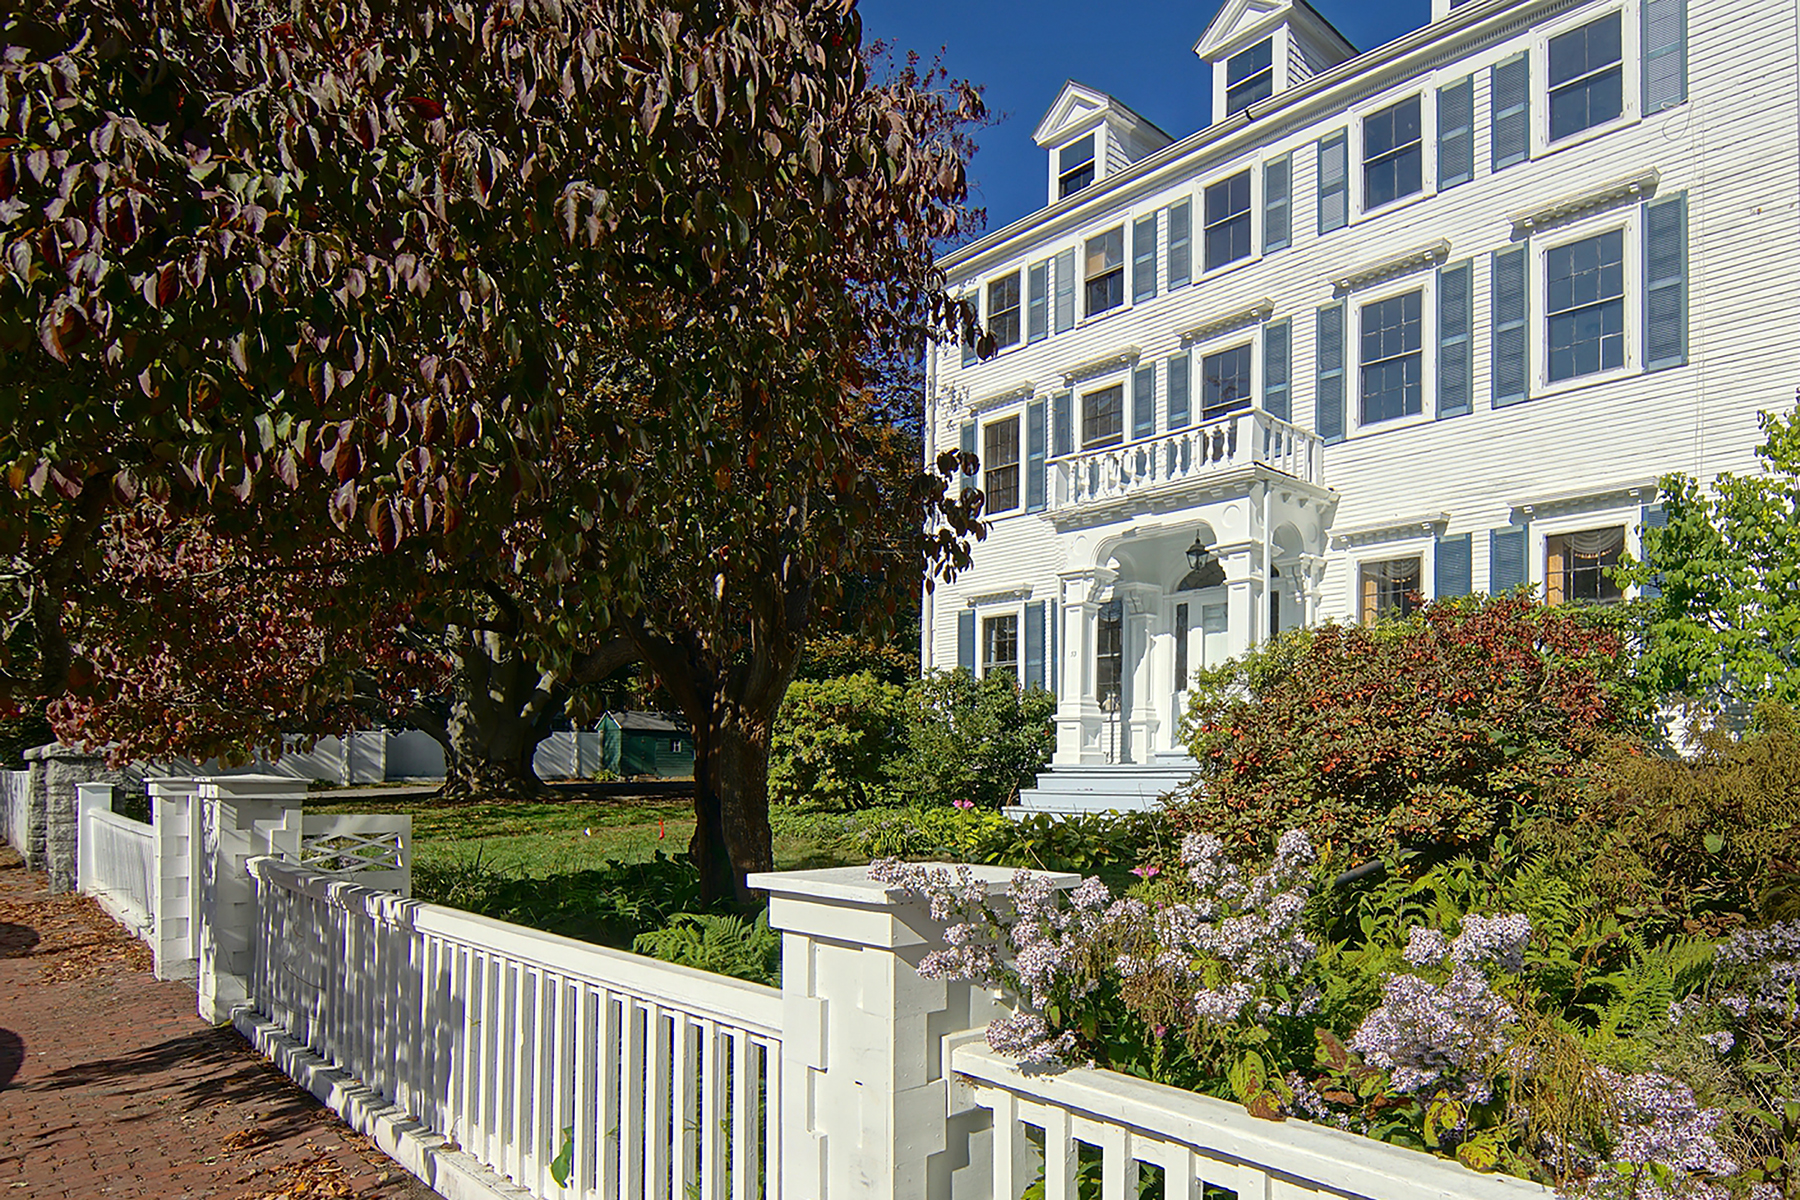 Single Family Home for Sale at Pickering-Heffenger House c. 1800 53 Austin Street Portsmouth, New Hampshire 03801 United States